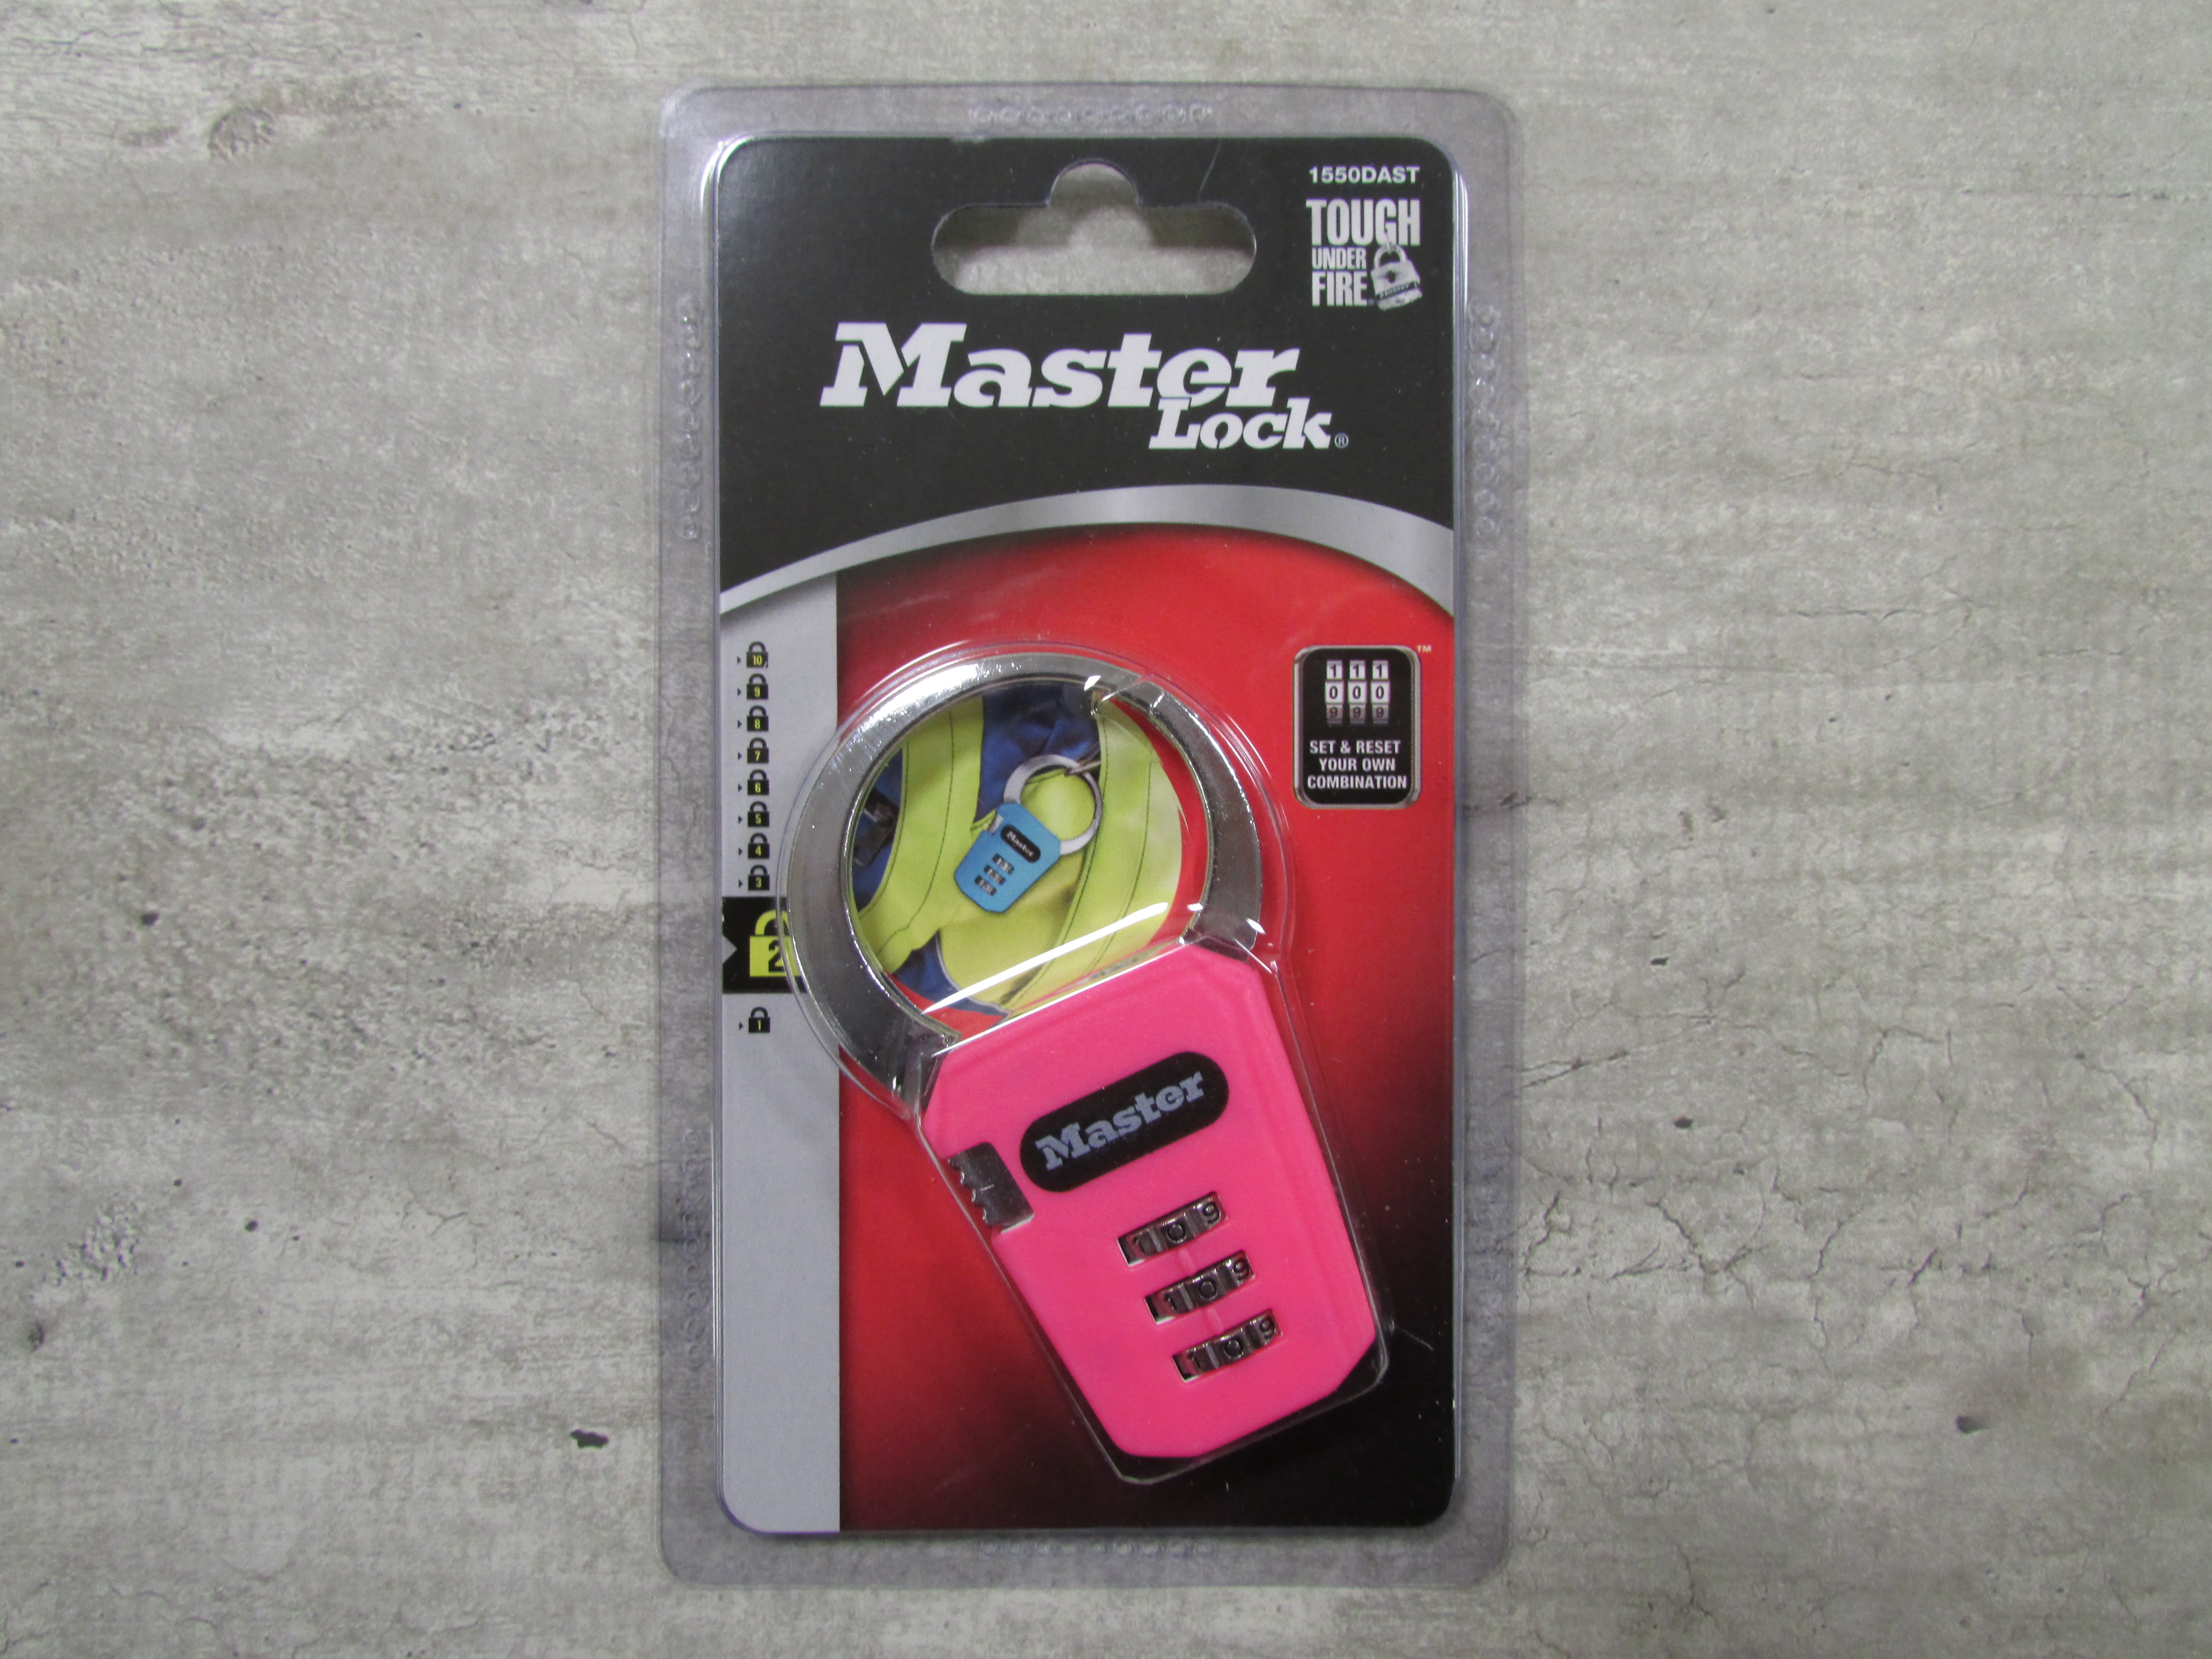 Image for the Backpack Lock, Master Lock, Set-Your-Own Combination, Resettable product